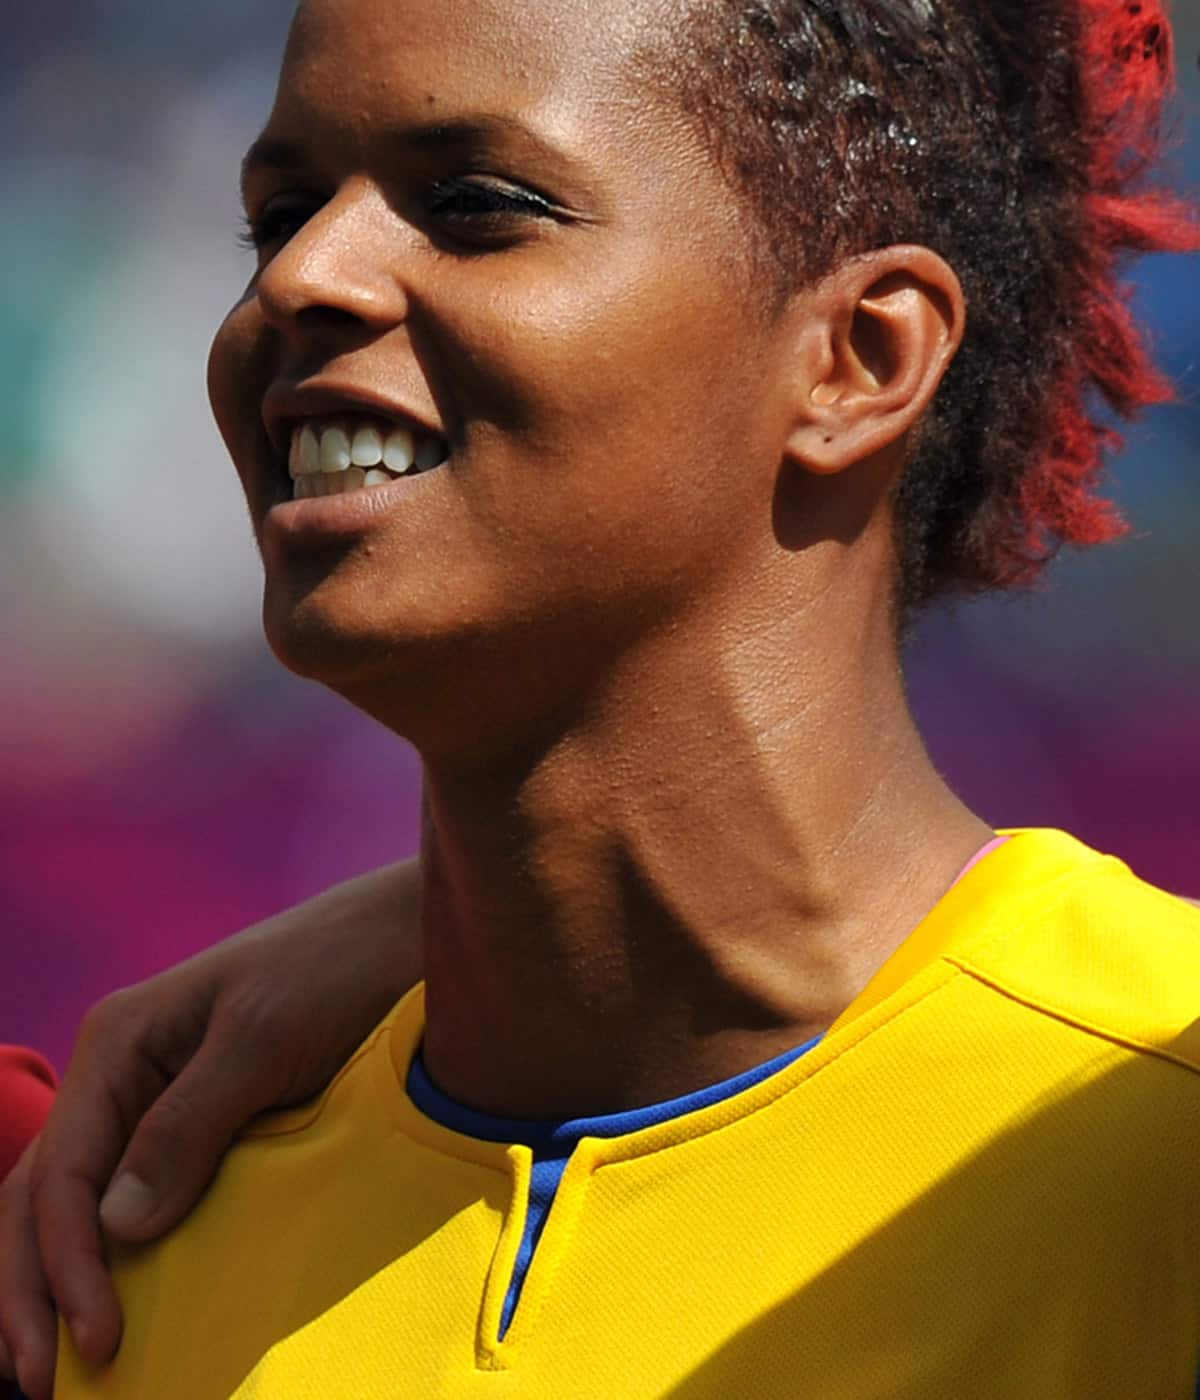 Karina LeBlanc: The moment 'I knew it was OK to leave'